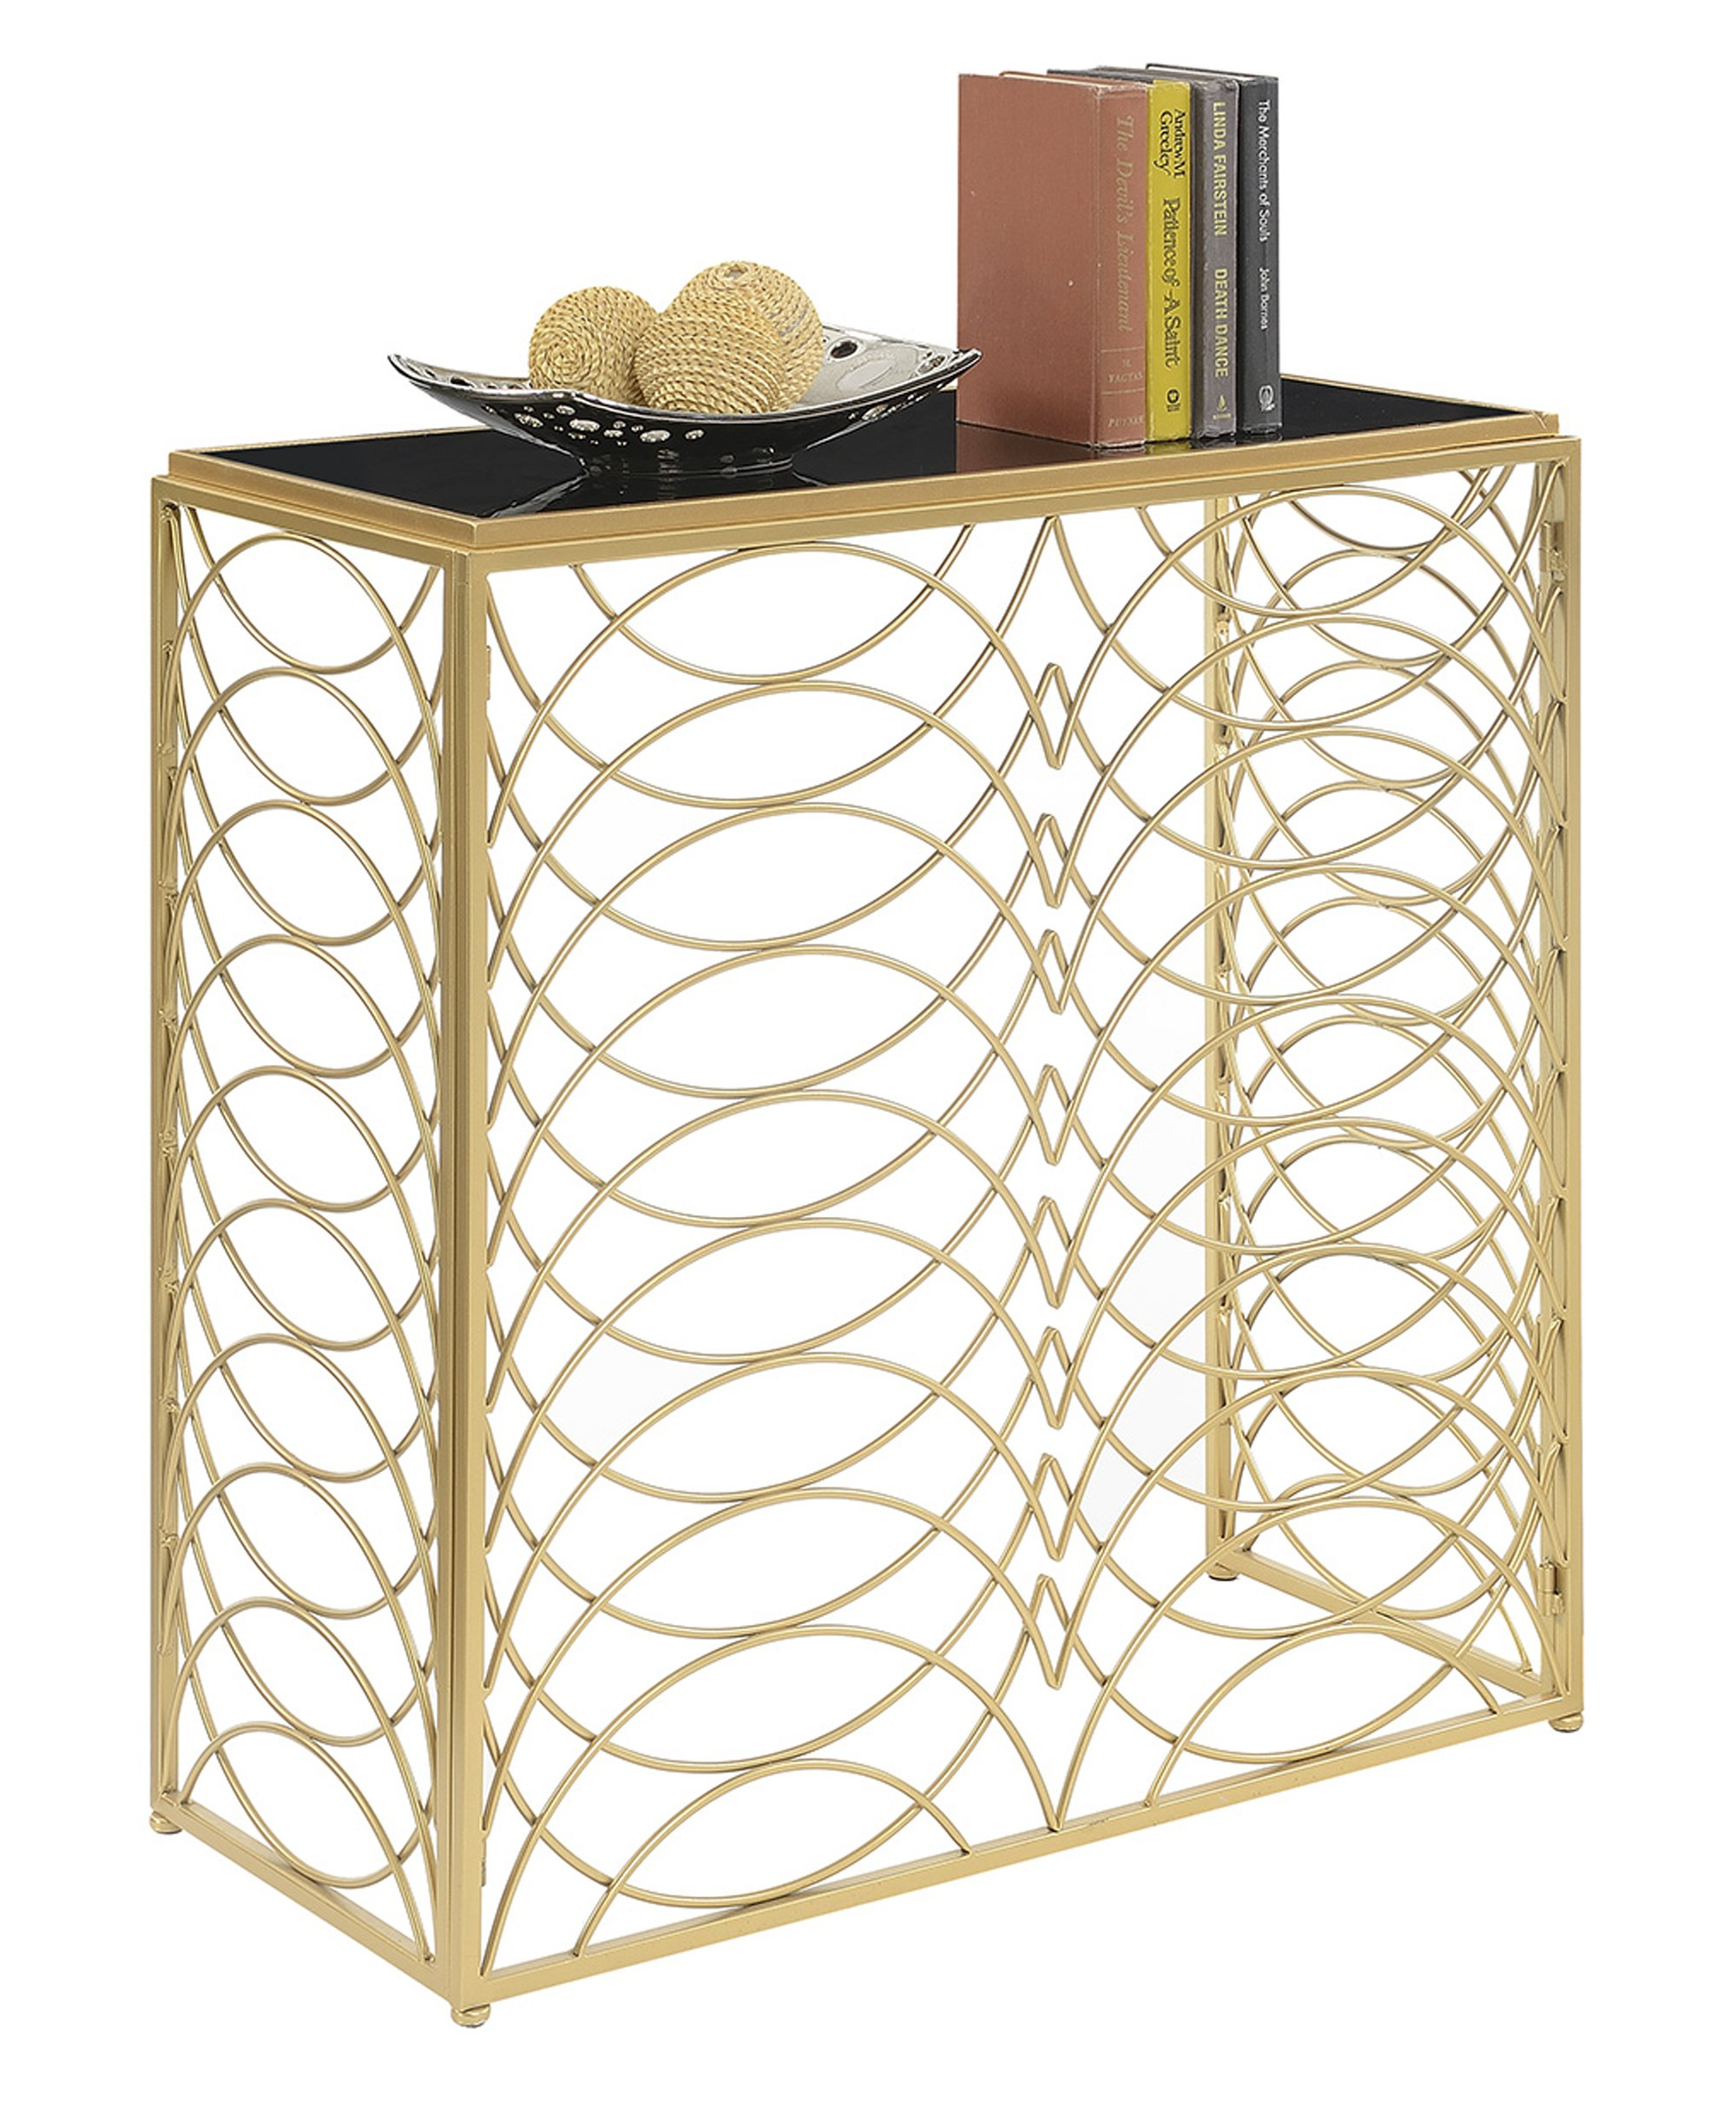 Convenience Concepts Gold Coast Tranquility Console Table, Gold / Black Glass - Gold Coast collection Available in multiple finishes Intricate scroll work - living-room-furniture, living-room, end-tables - 91W86tmzz5L -